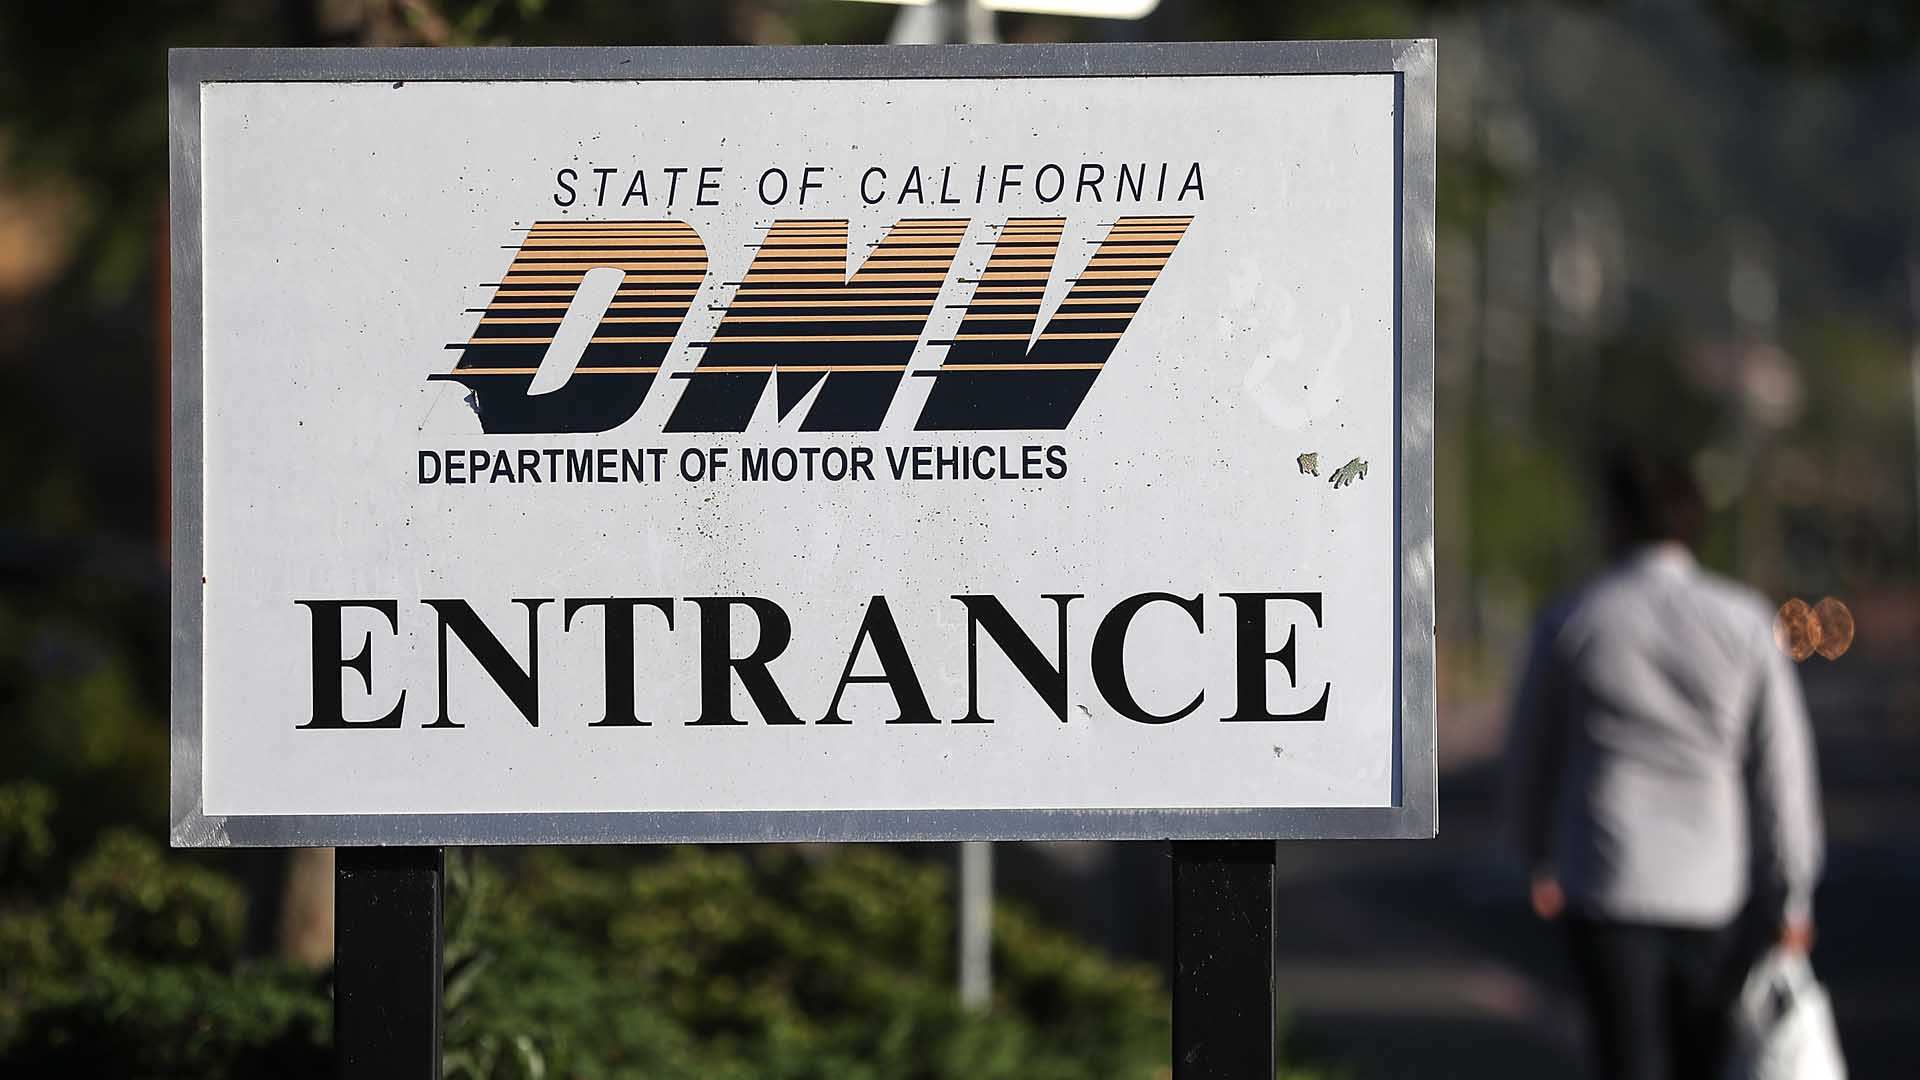 A sign is posted in front of a California Department of Motor Vehicles (DMV) office on May 9, 2017 in Corte Madera. (Credit: Justin Sullivan/Getty Images)